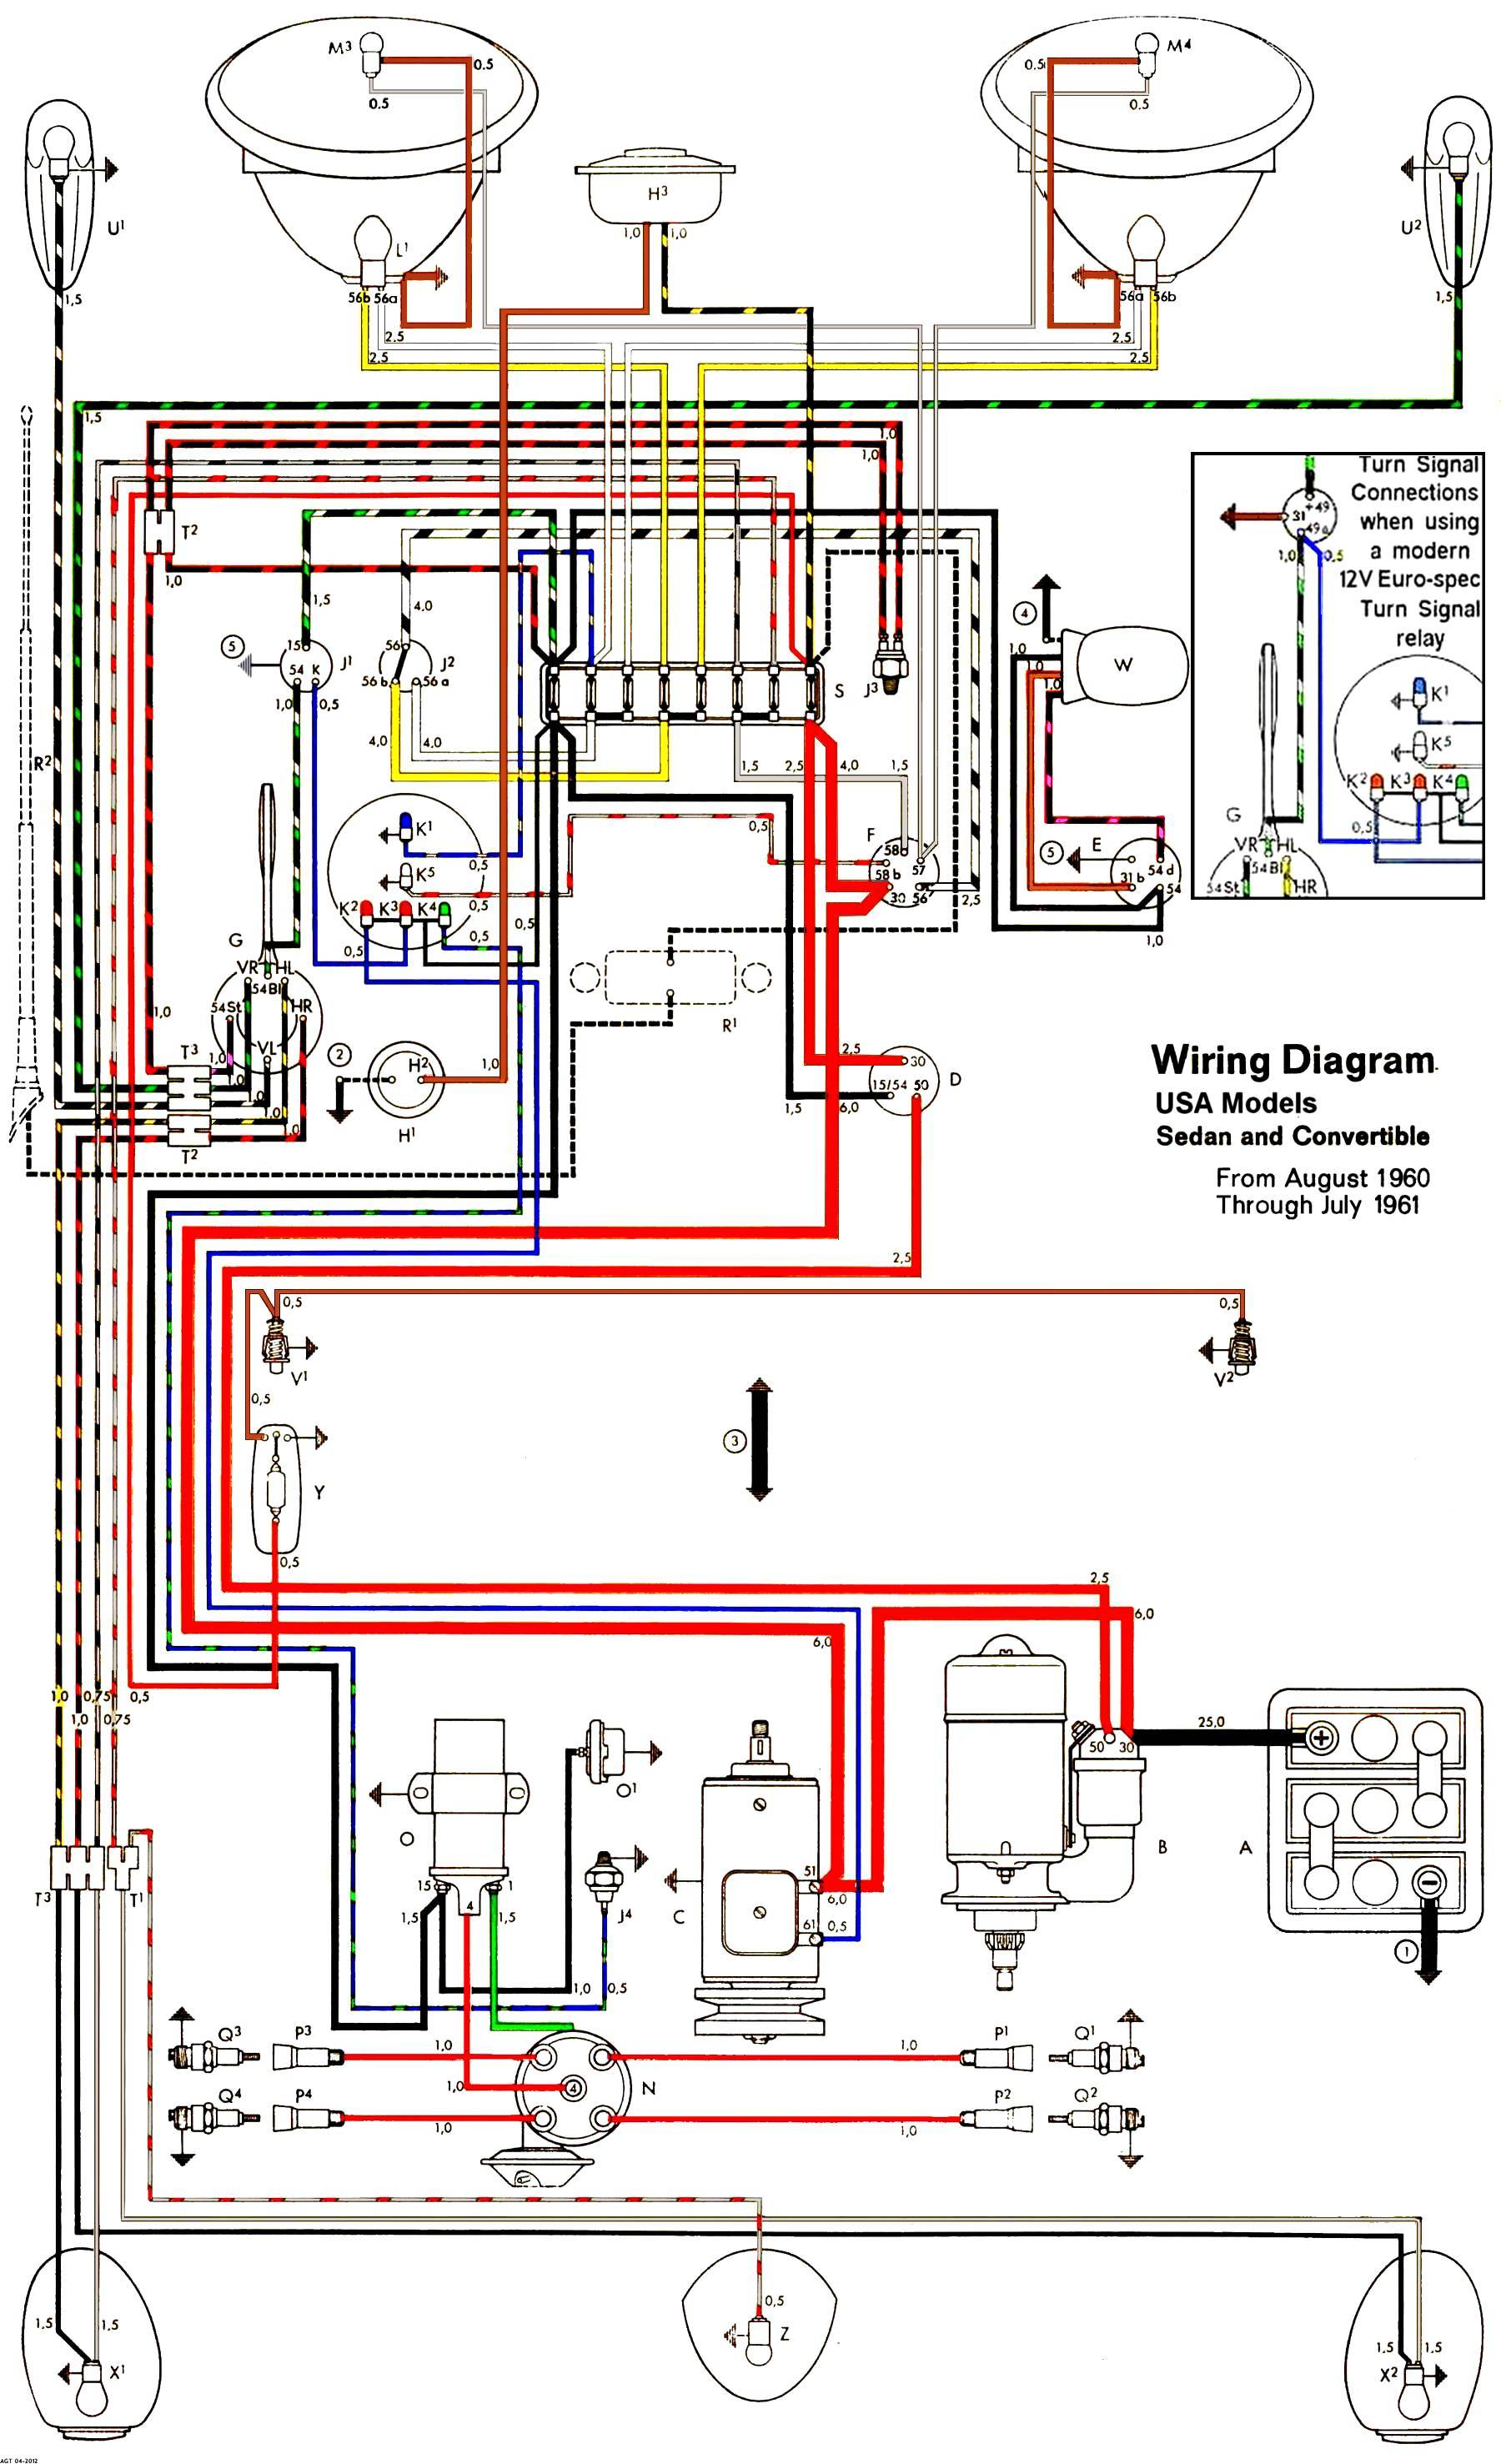 1961USA T1 74 vw wiring diagram basic wiring diagram \u2022